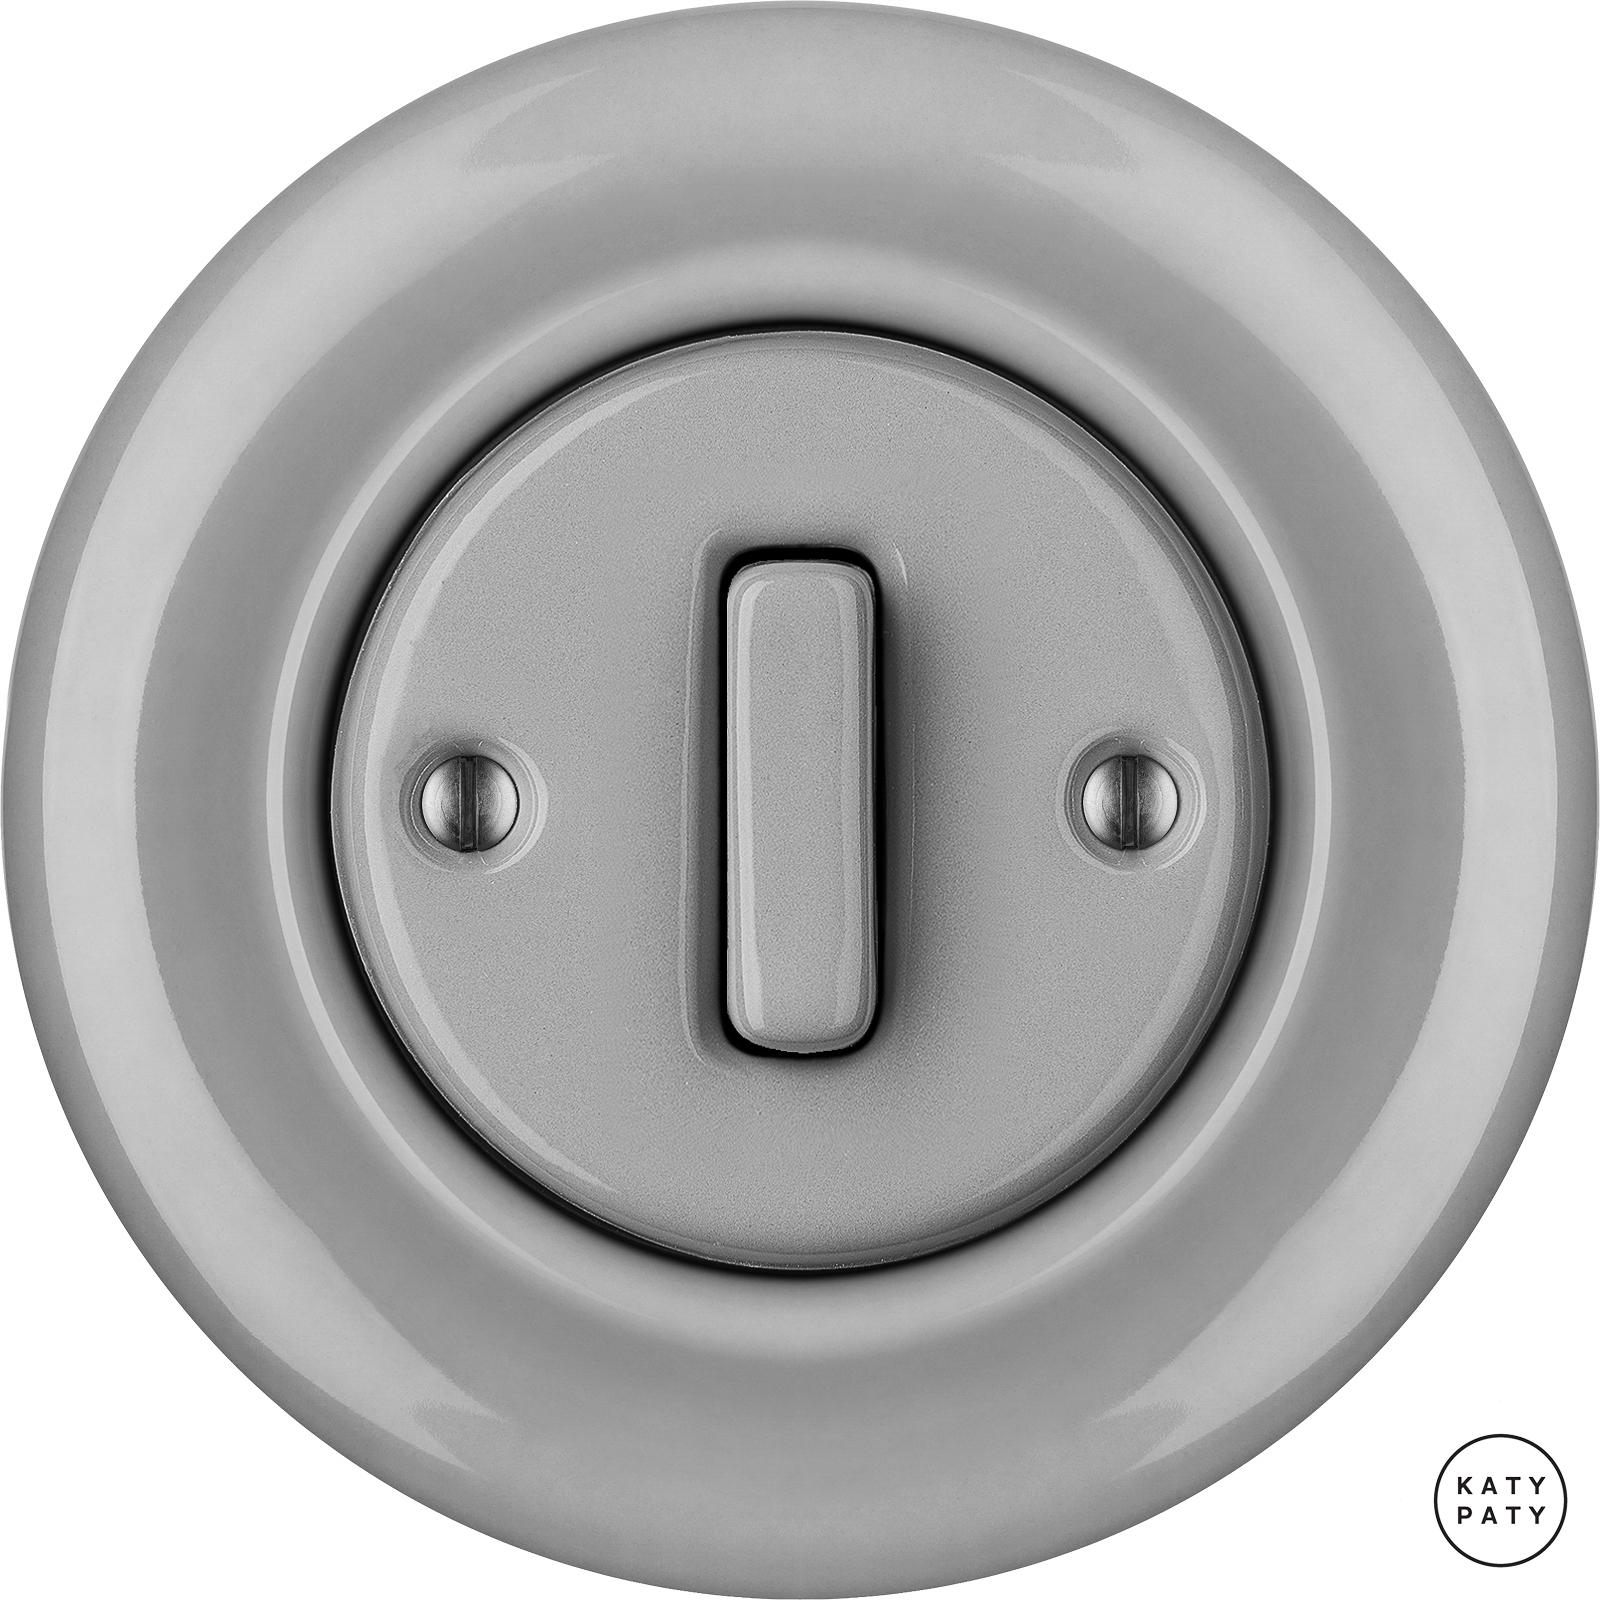 Porcelain switches - 1 gang - SLIM ()  - CANA | Katy Paty